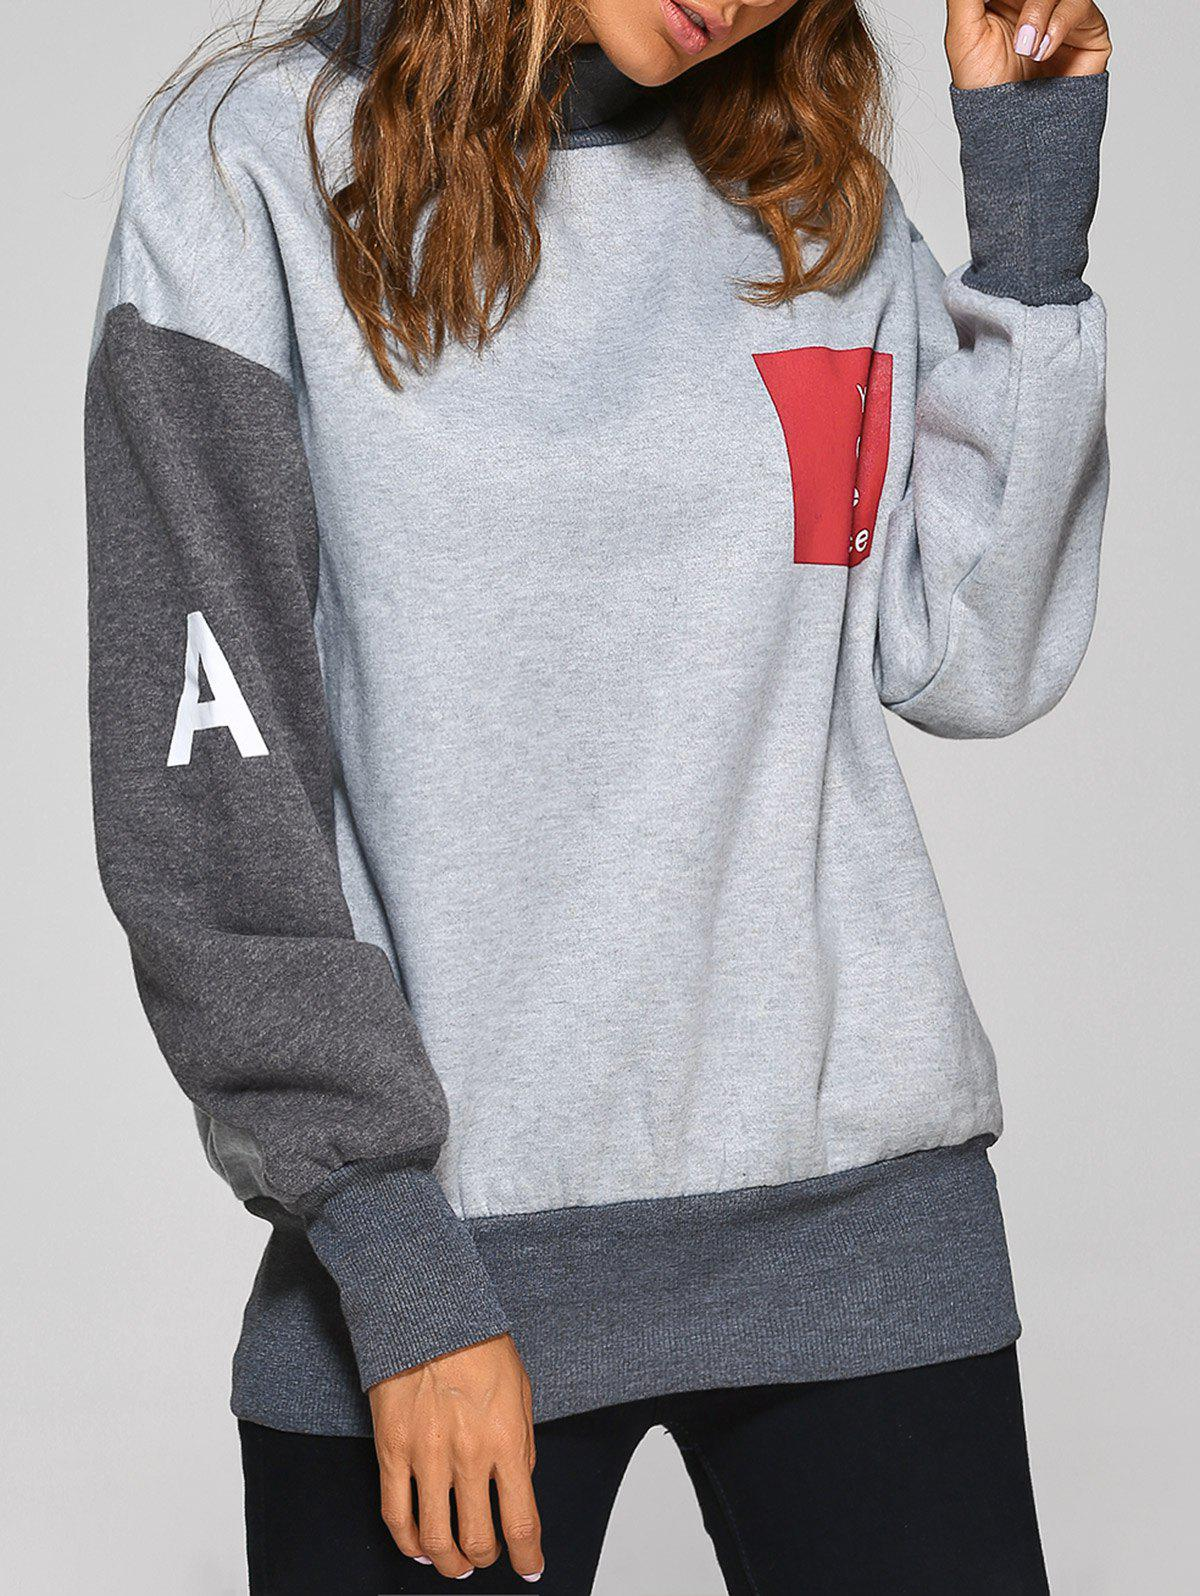 Moyenne Col Gris Sweatshirt 2018 Haut Patch Graphique In Taille 0pwS0qPHnW